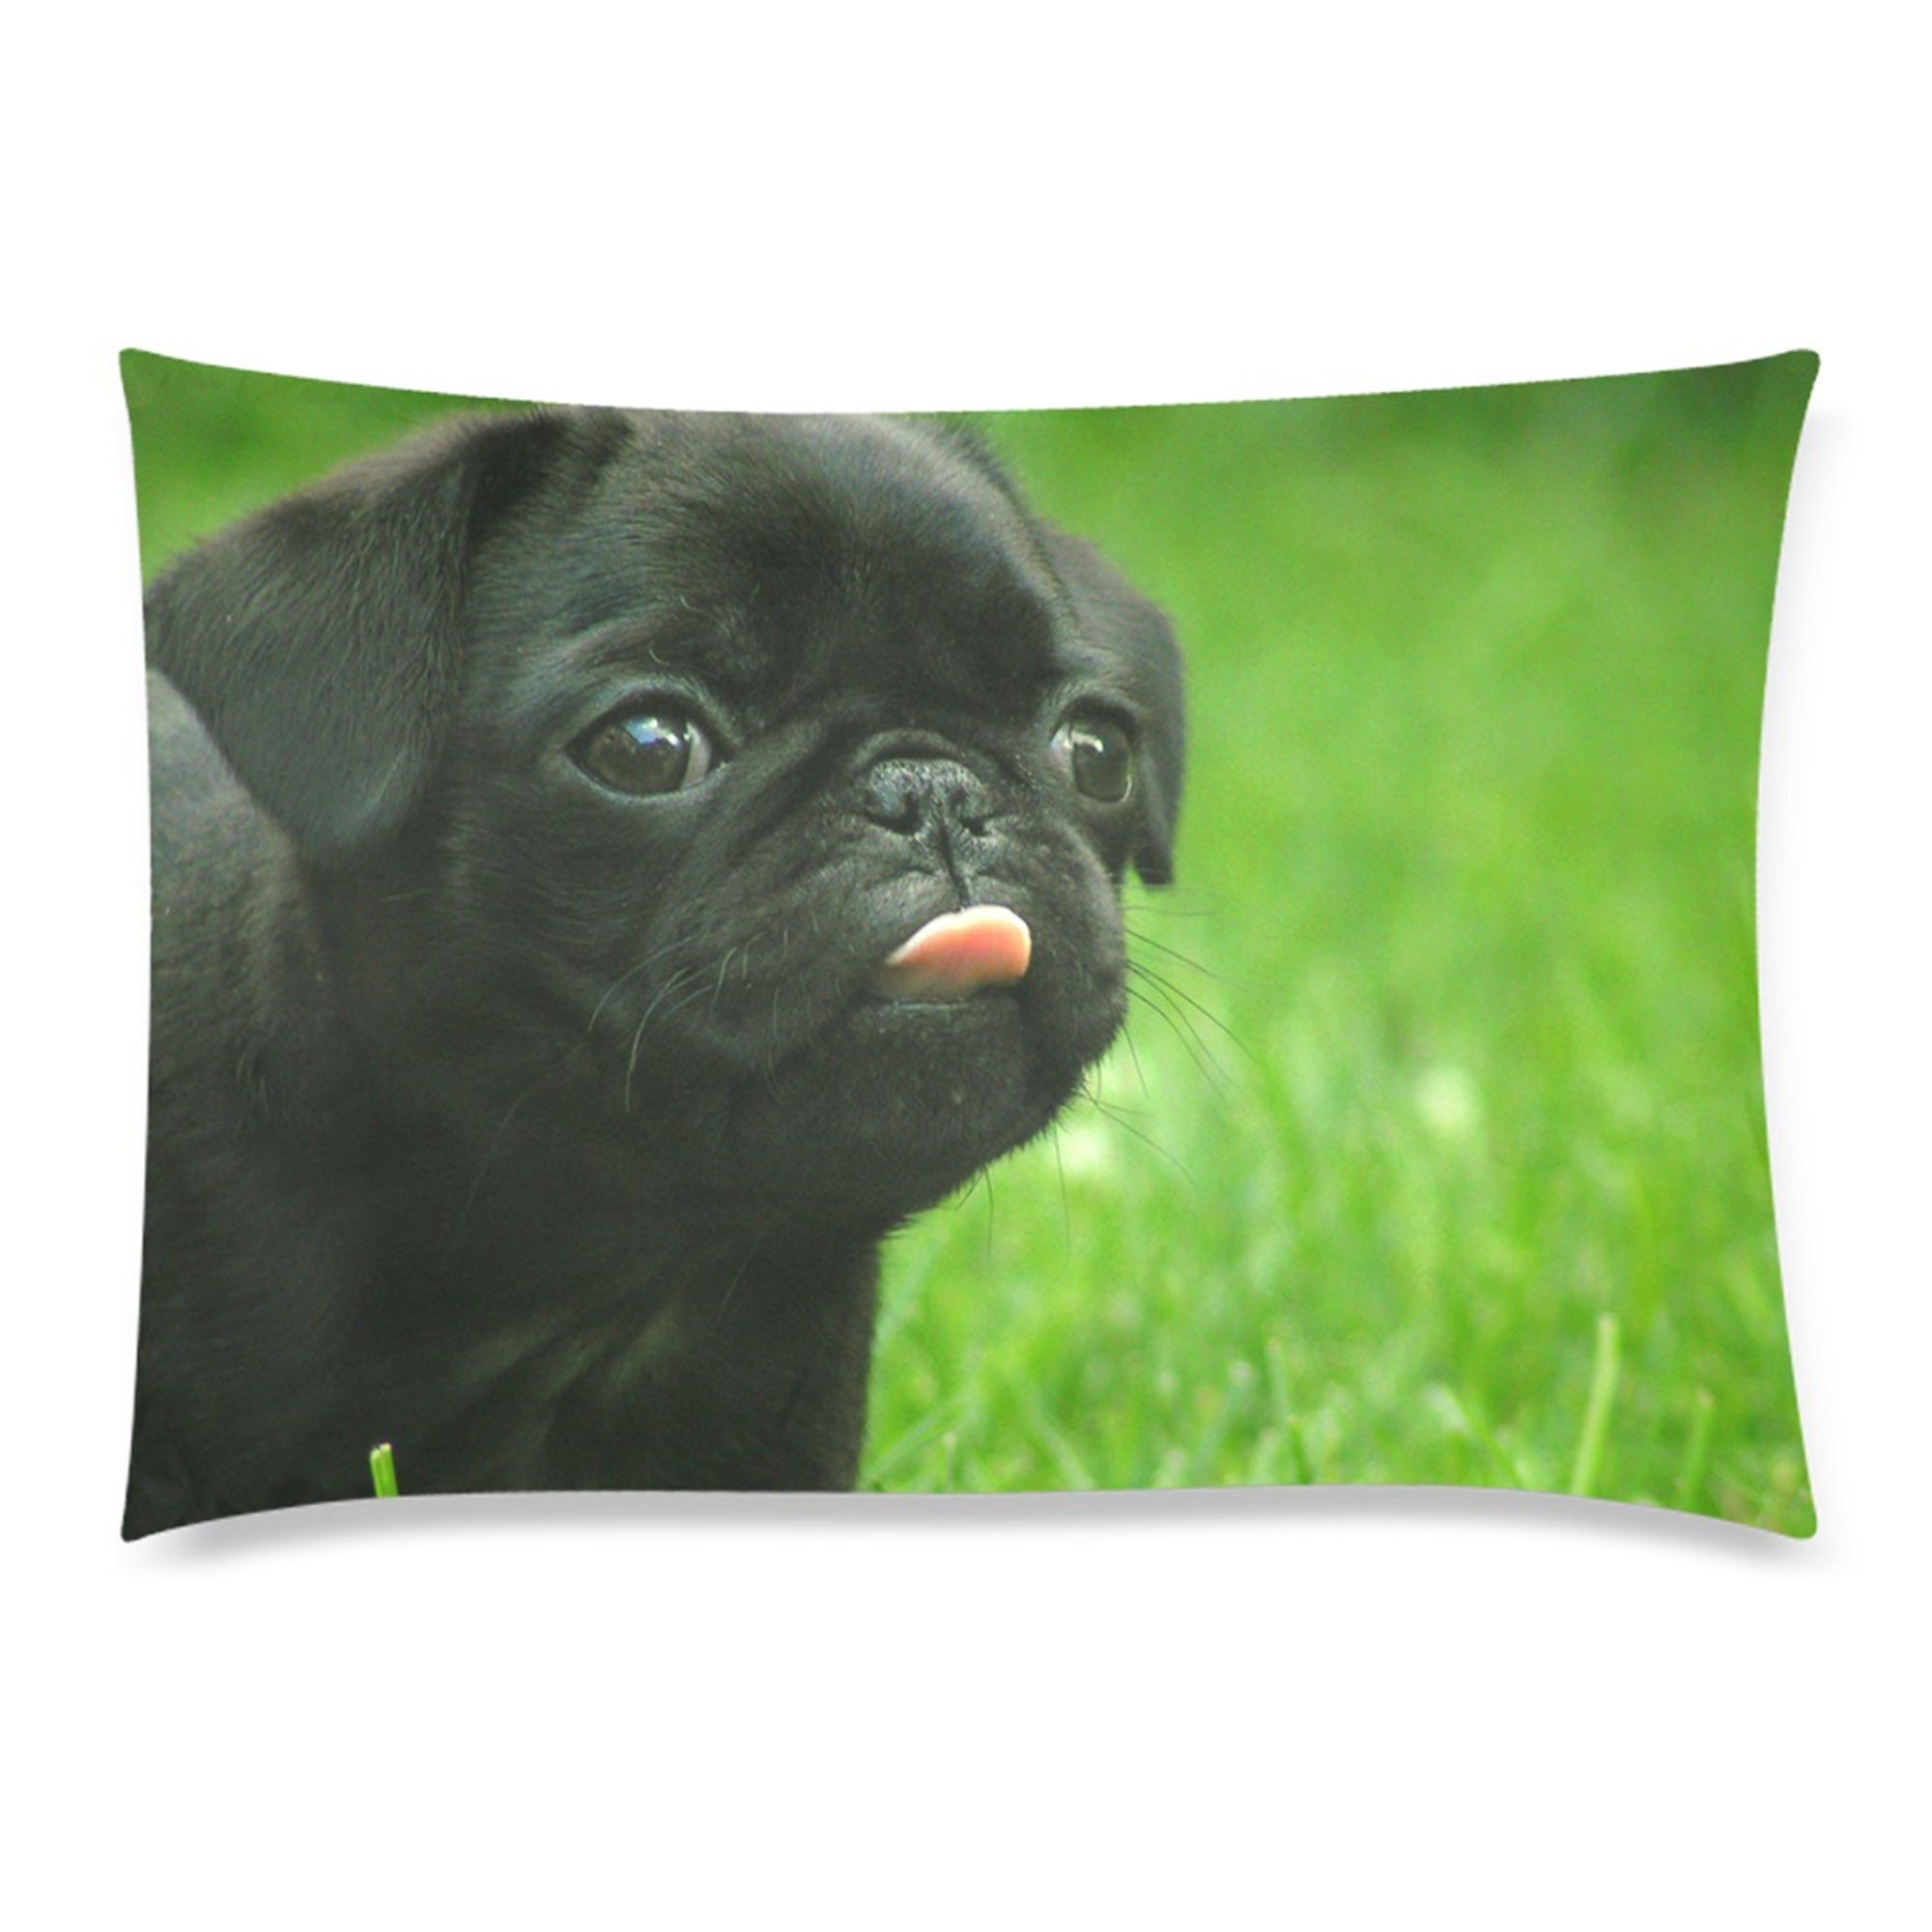 InterestPrint Custom Black Funny Pug Dog Rectangle Pillowcase Standard Size 20''x30'' Twin Sides, Lovely Animal Puppy Dog Pillow Case Cover Decorative